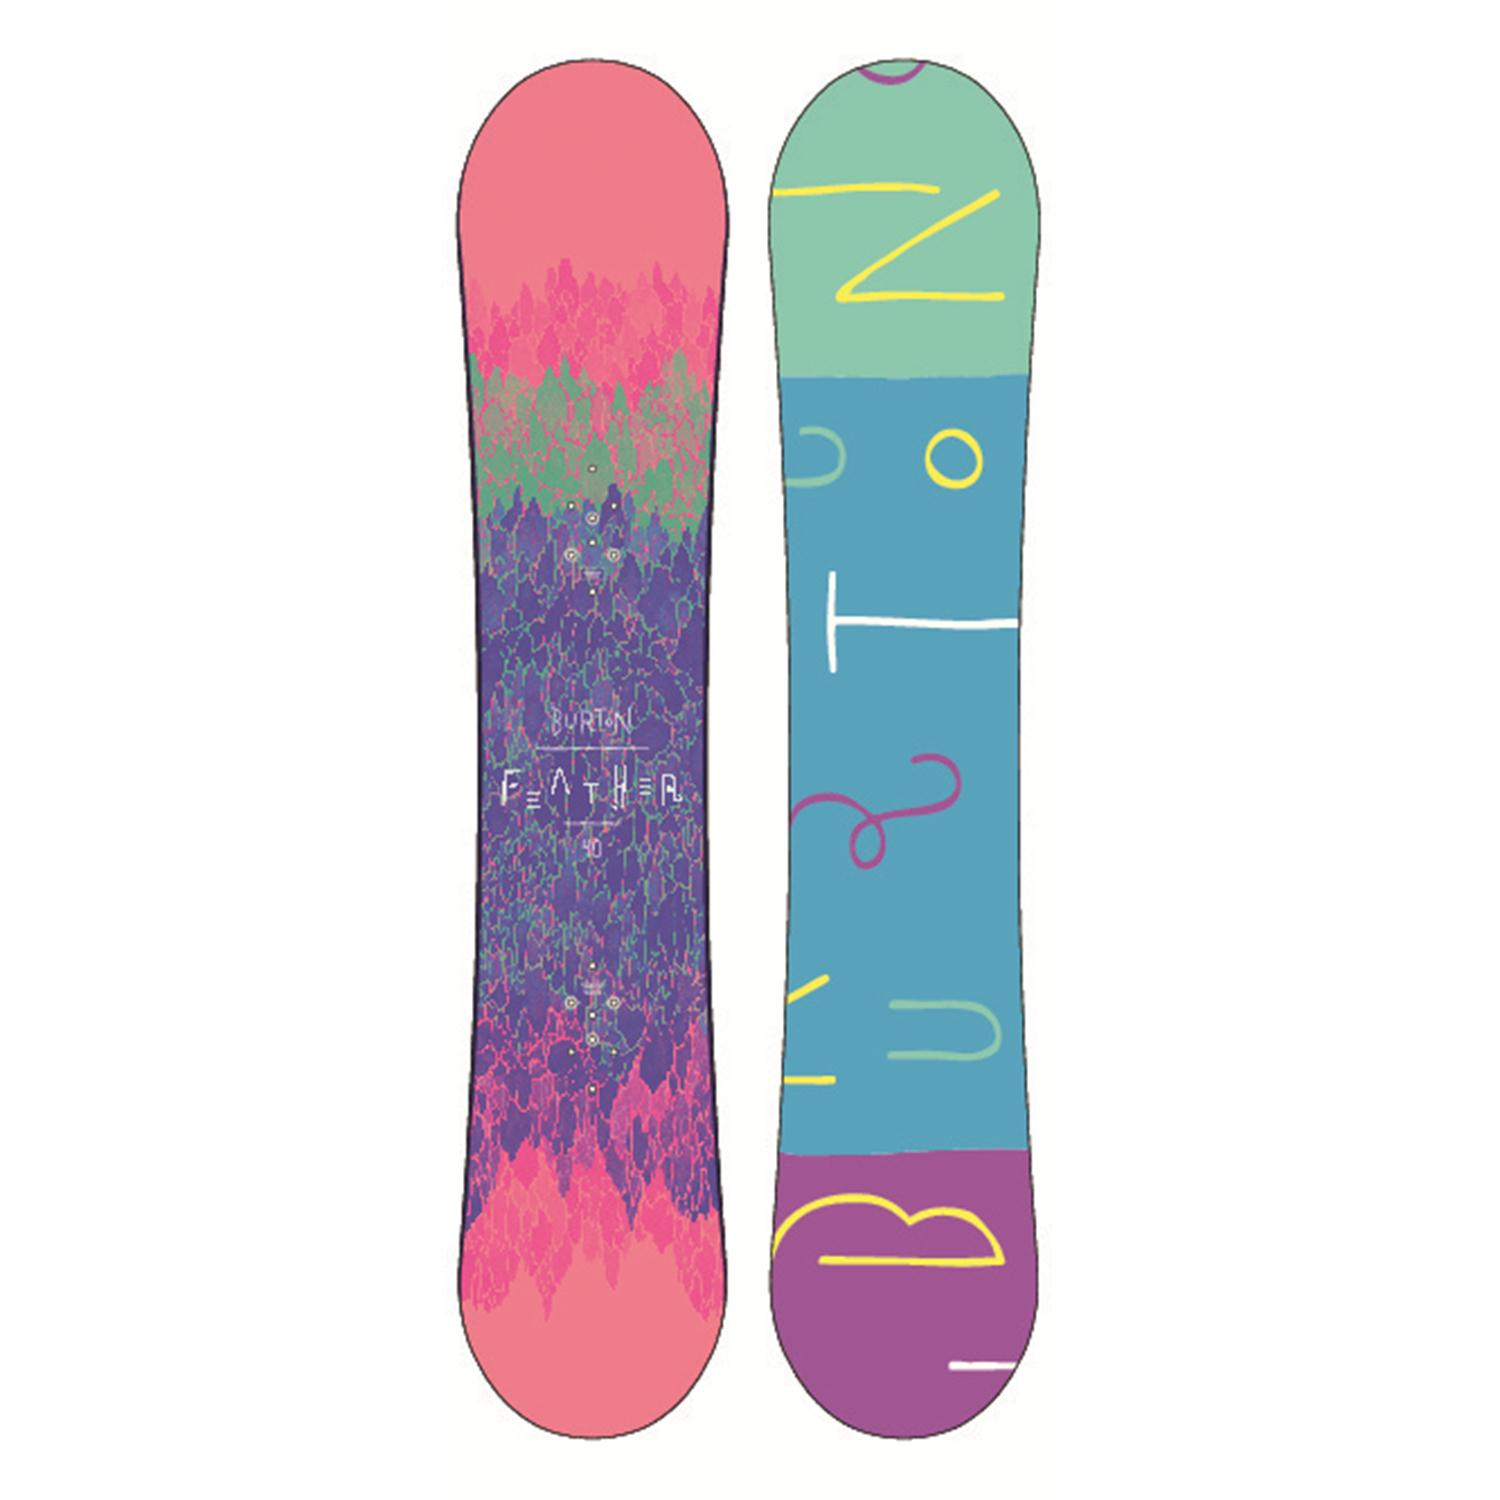 Object moved   Burton Snowboards 2013